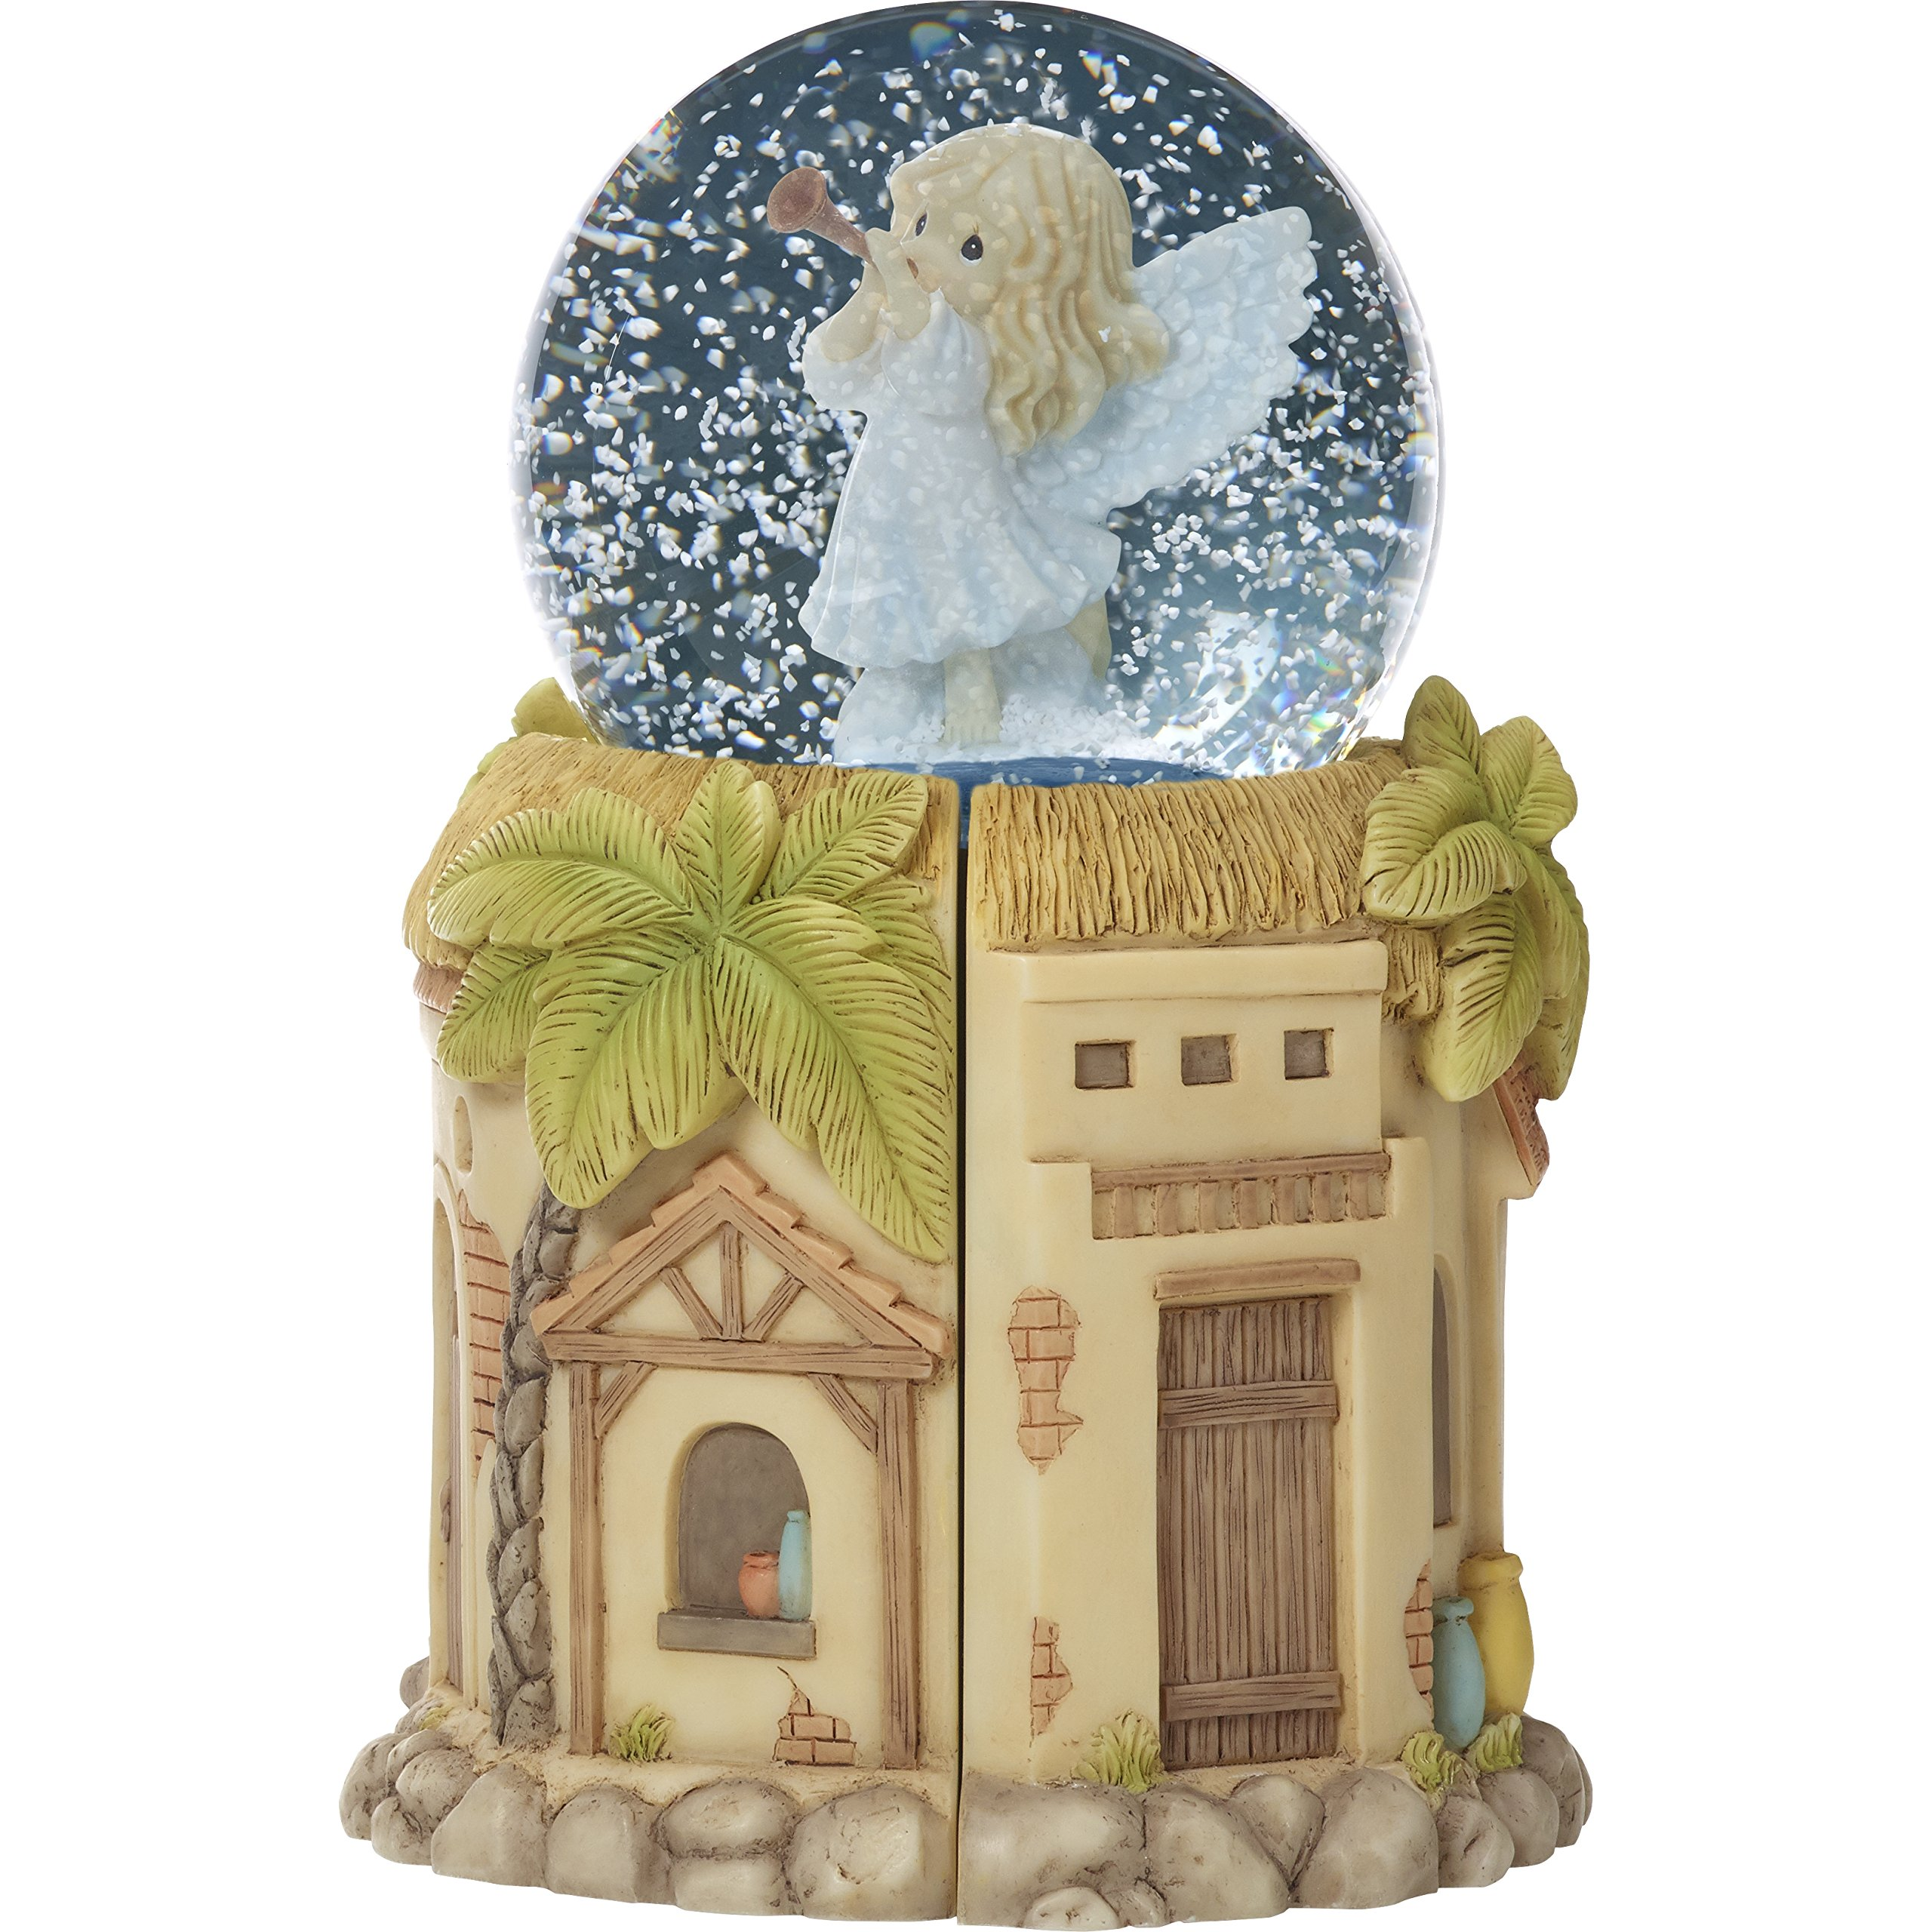 Precious Moments'' Come Let Us Adore Him Nativity LED Snow Globe with Blower, Multicolor